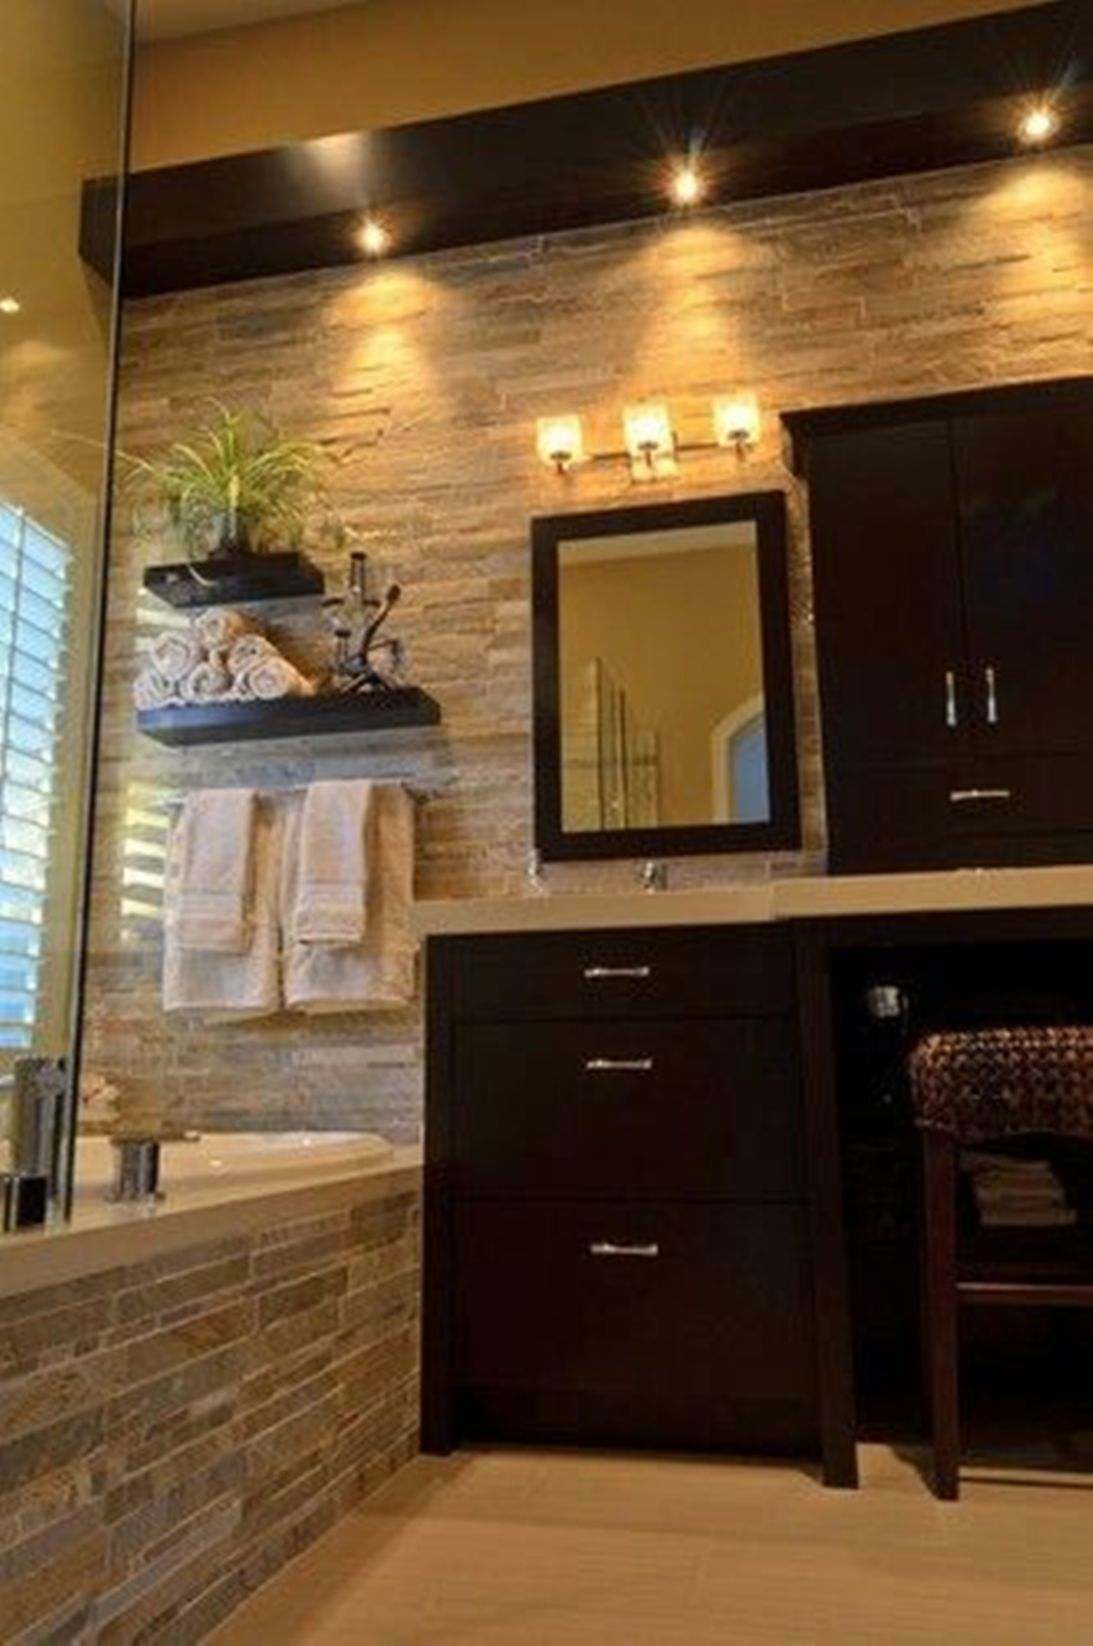 cool-bathroom-with-natural-stone-bathroom-tiles-and-dark-wood-vanity-and-recessed-bathroom-lighting-fixtures